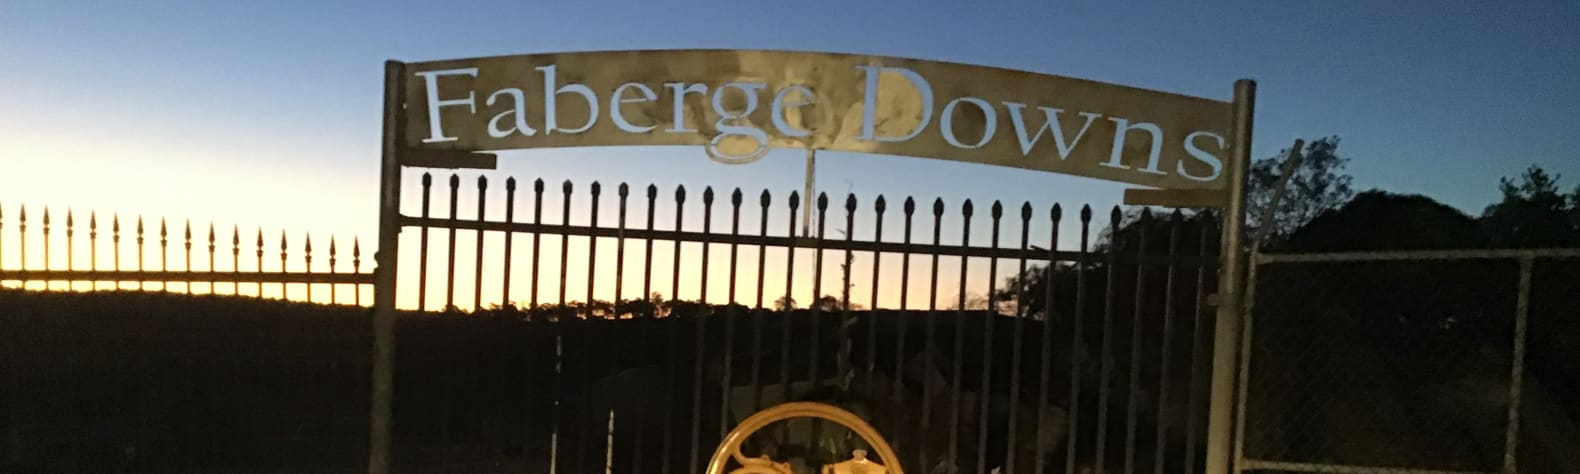 Faberge Downs